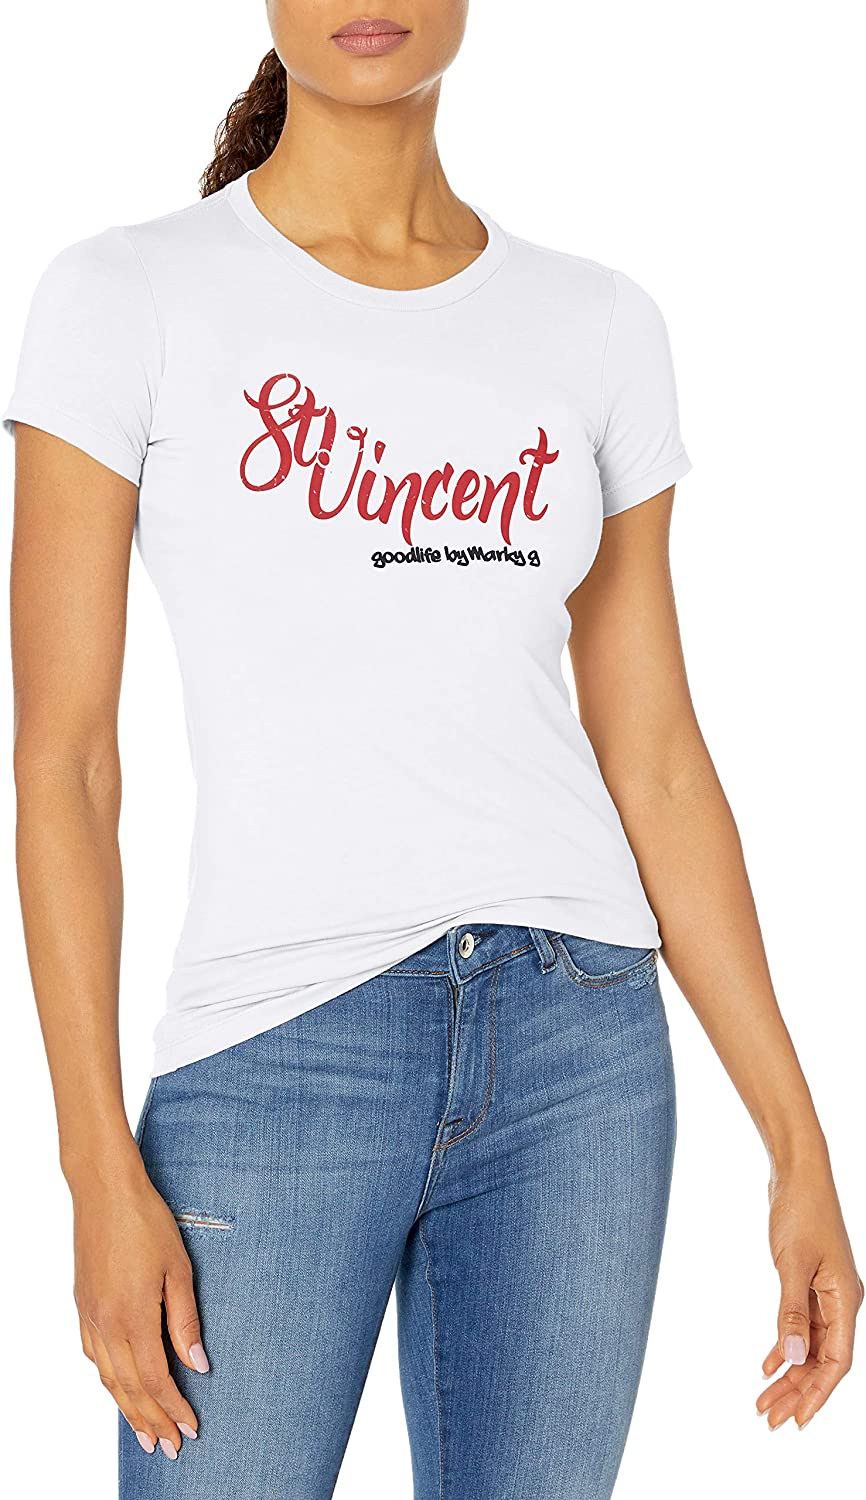 Marky G Apparel Womens Casual Short Sleeve Crewneck Tops Blouses Slim Fit T-Shirt with Vincent Printed S White